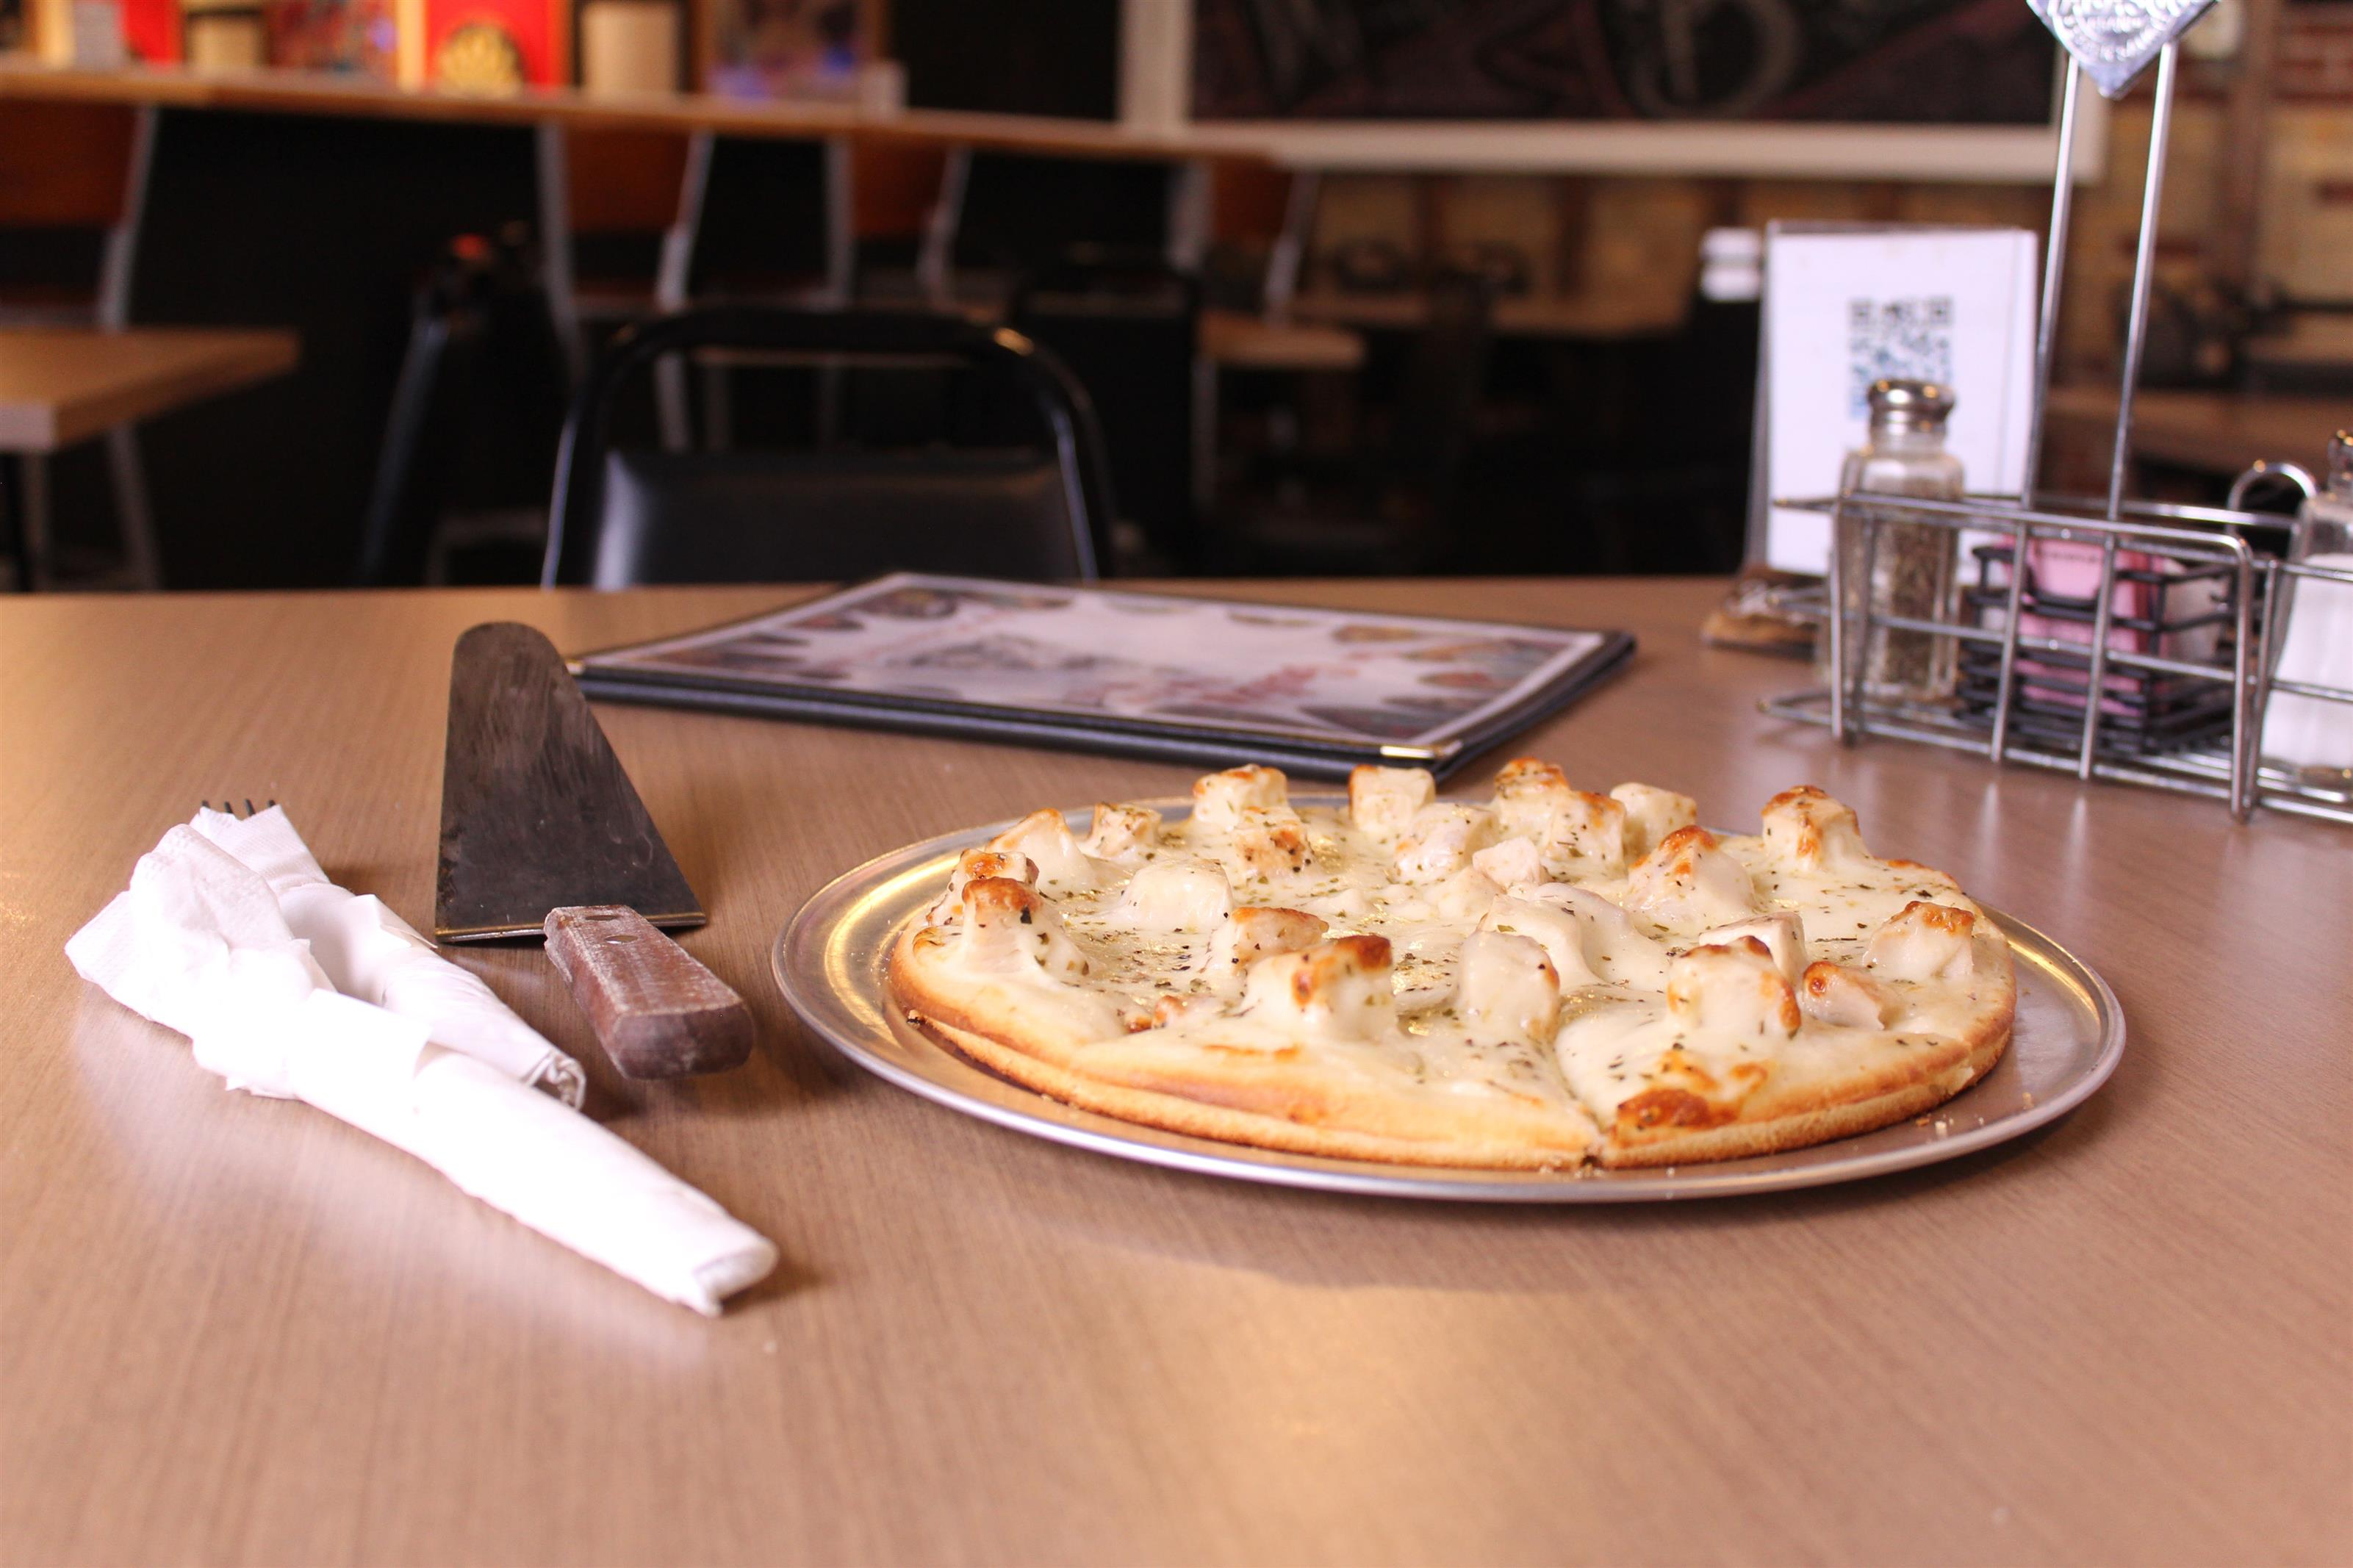 pizza pie with utensils and menu